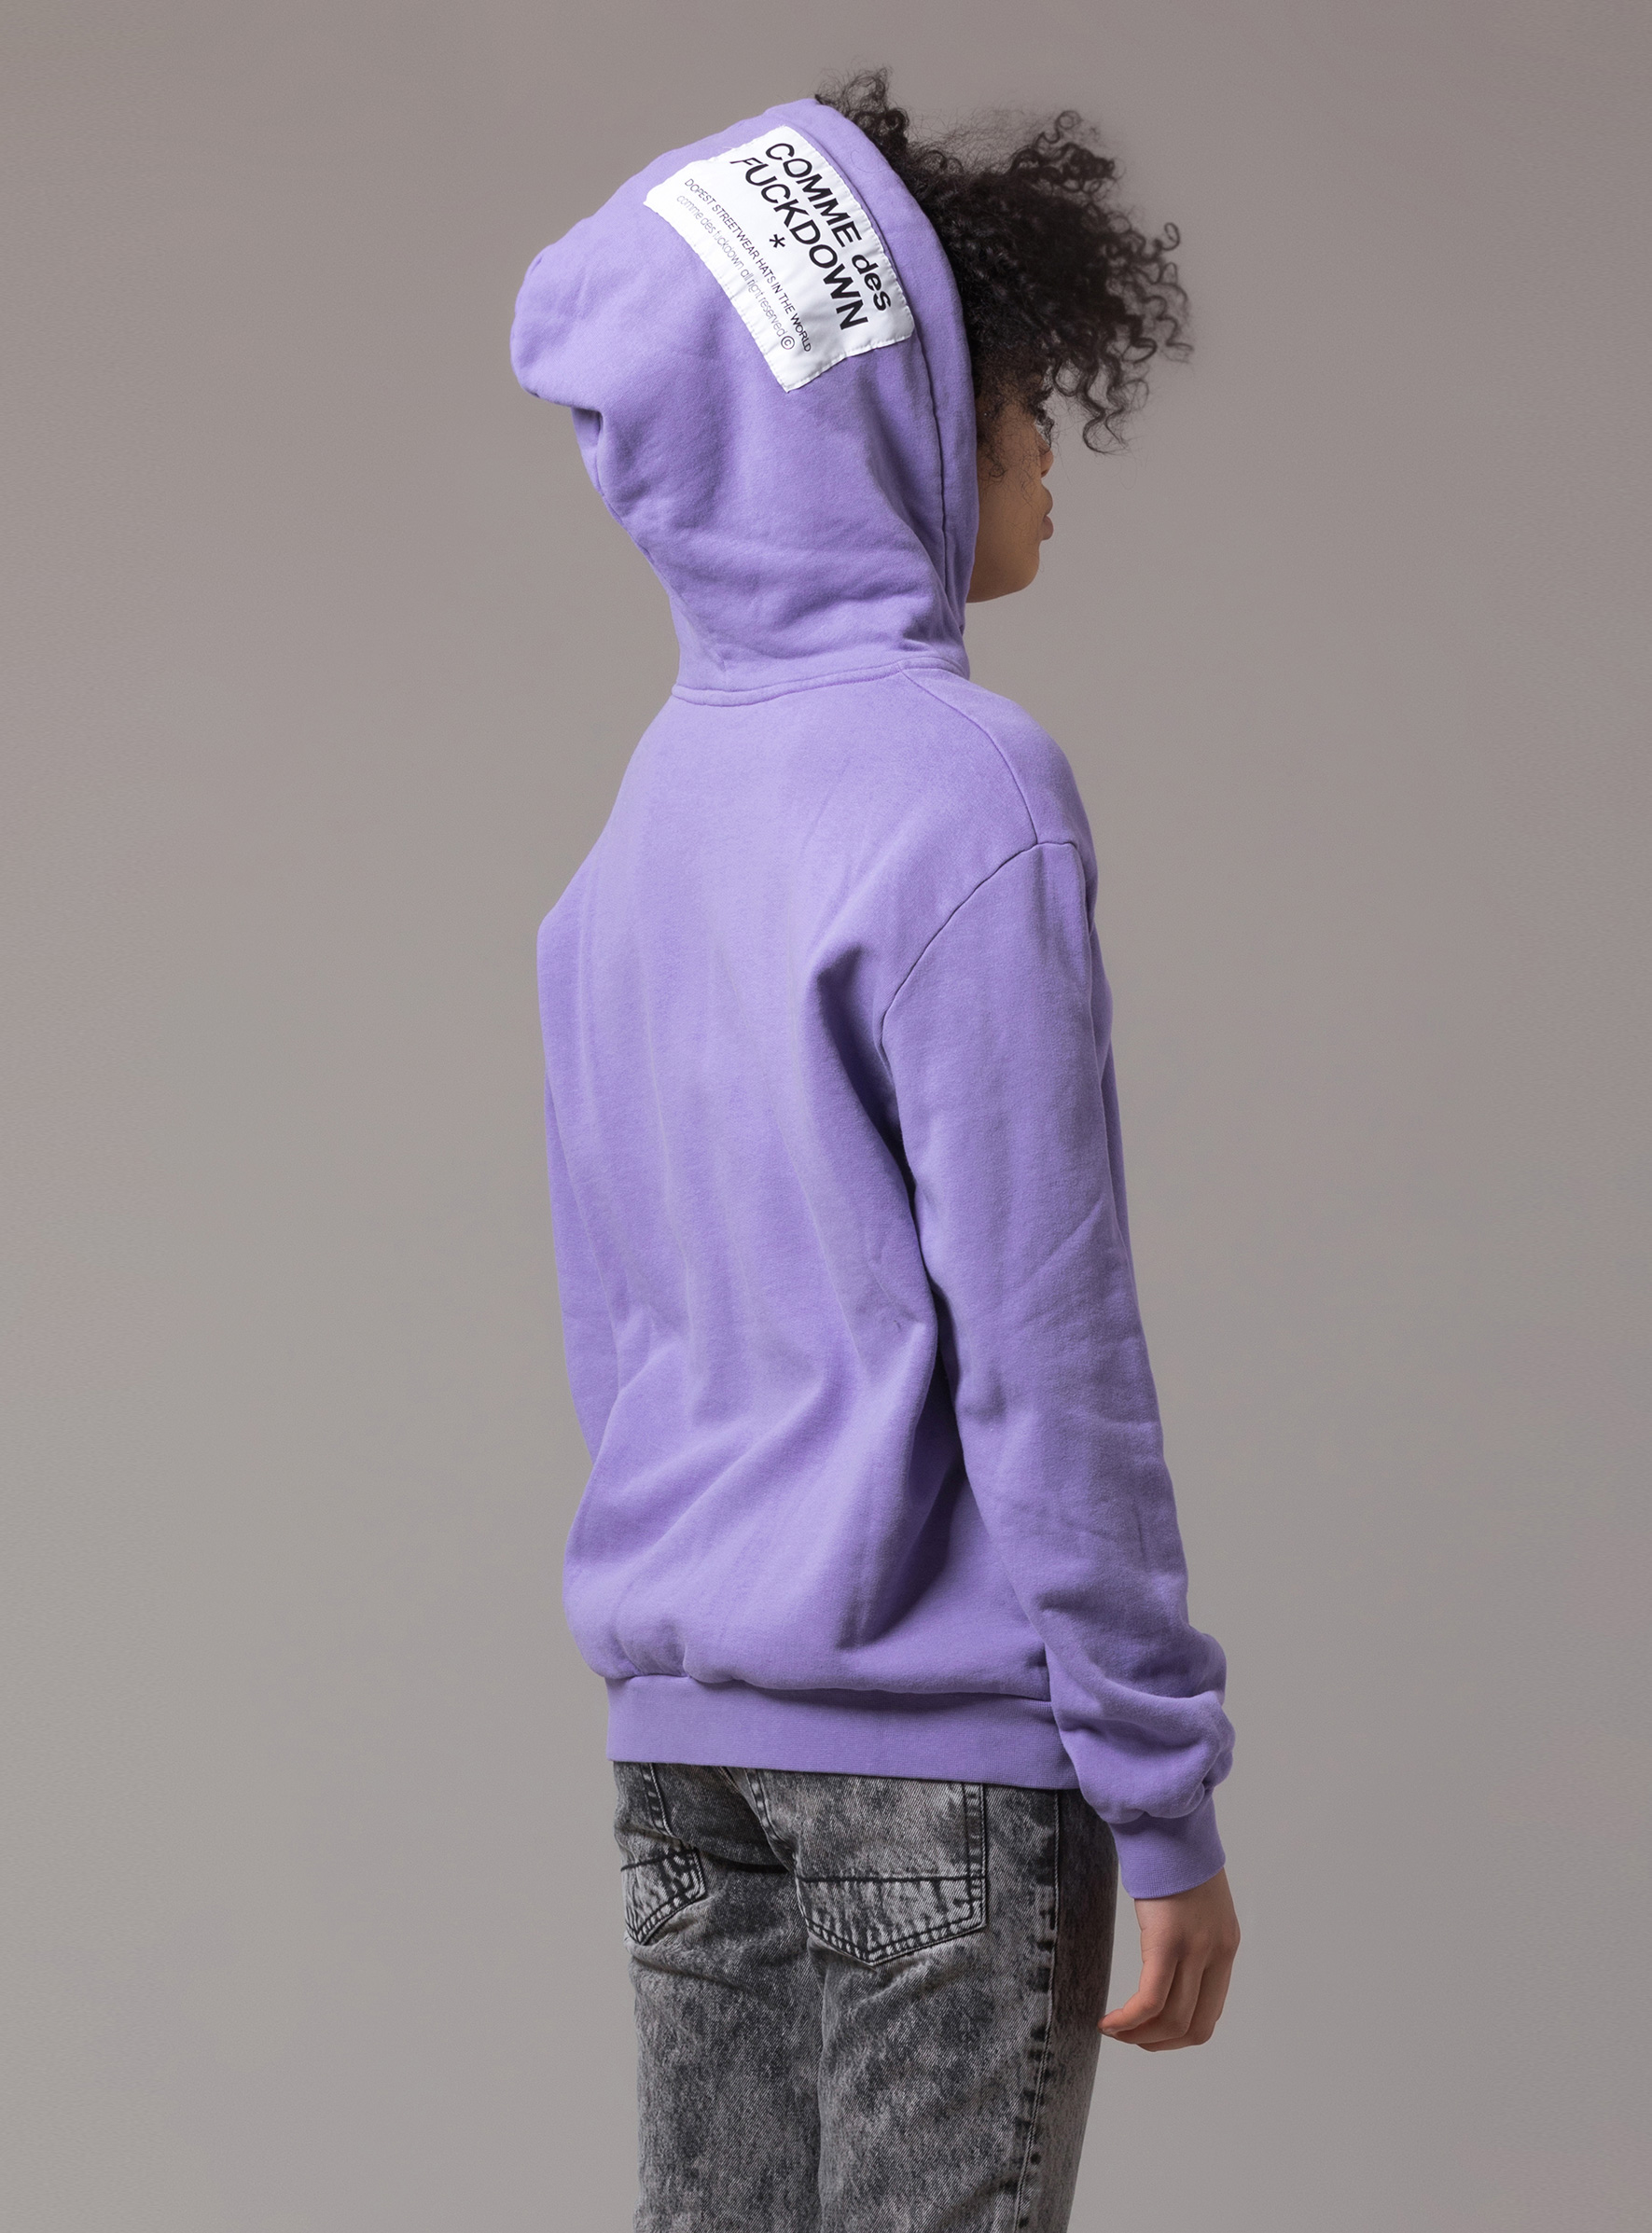 GIACCA - CDFD347 - COMME DES FKDOWN